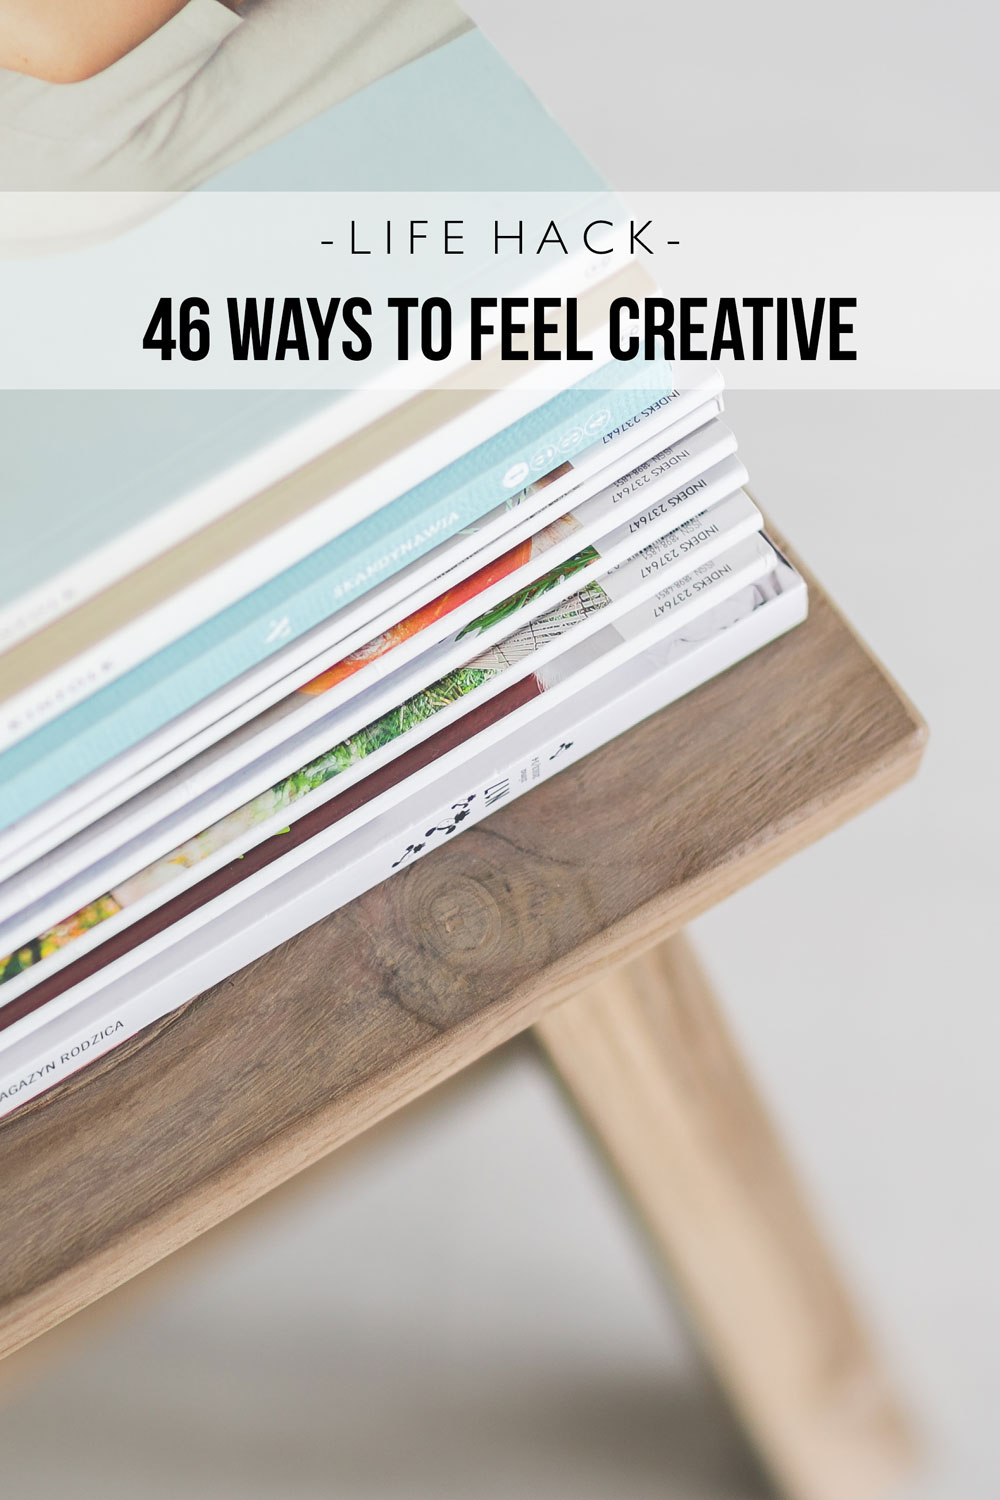 Tips To Feel Creative